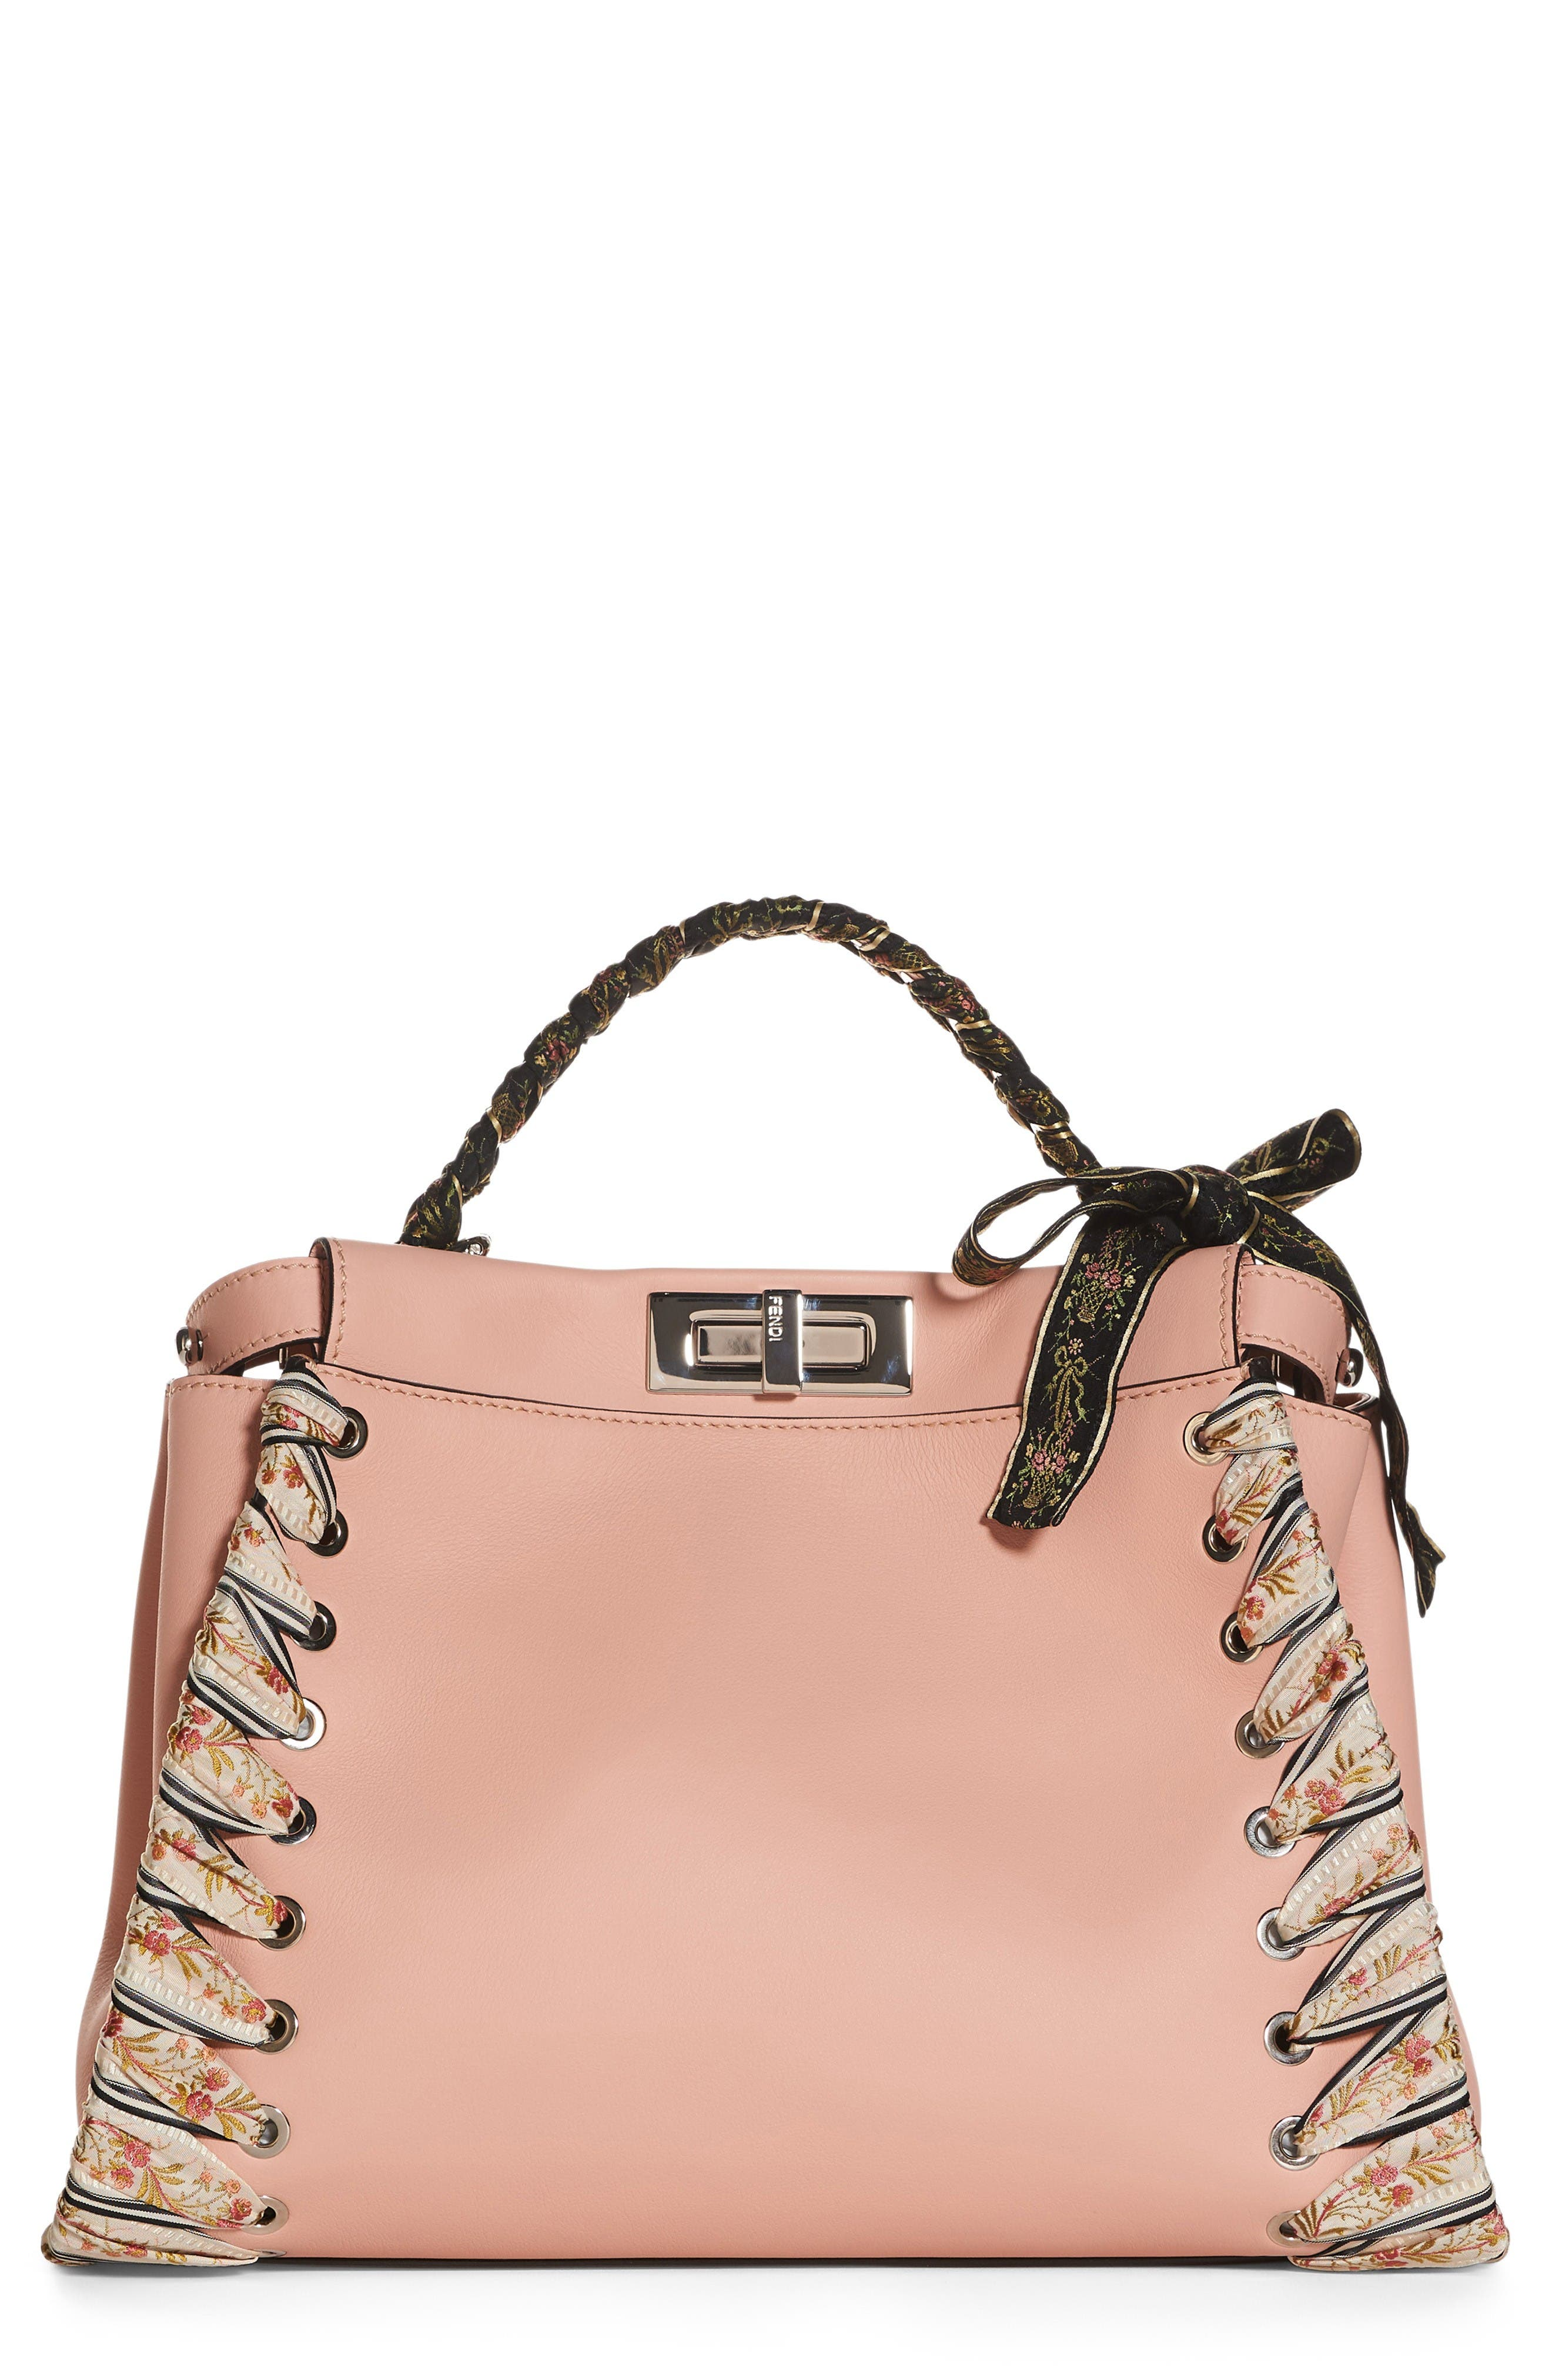 Medium Peekaboo Whipstitched Leather Satchel,                         Main,                         color, Baby Pink